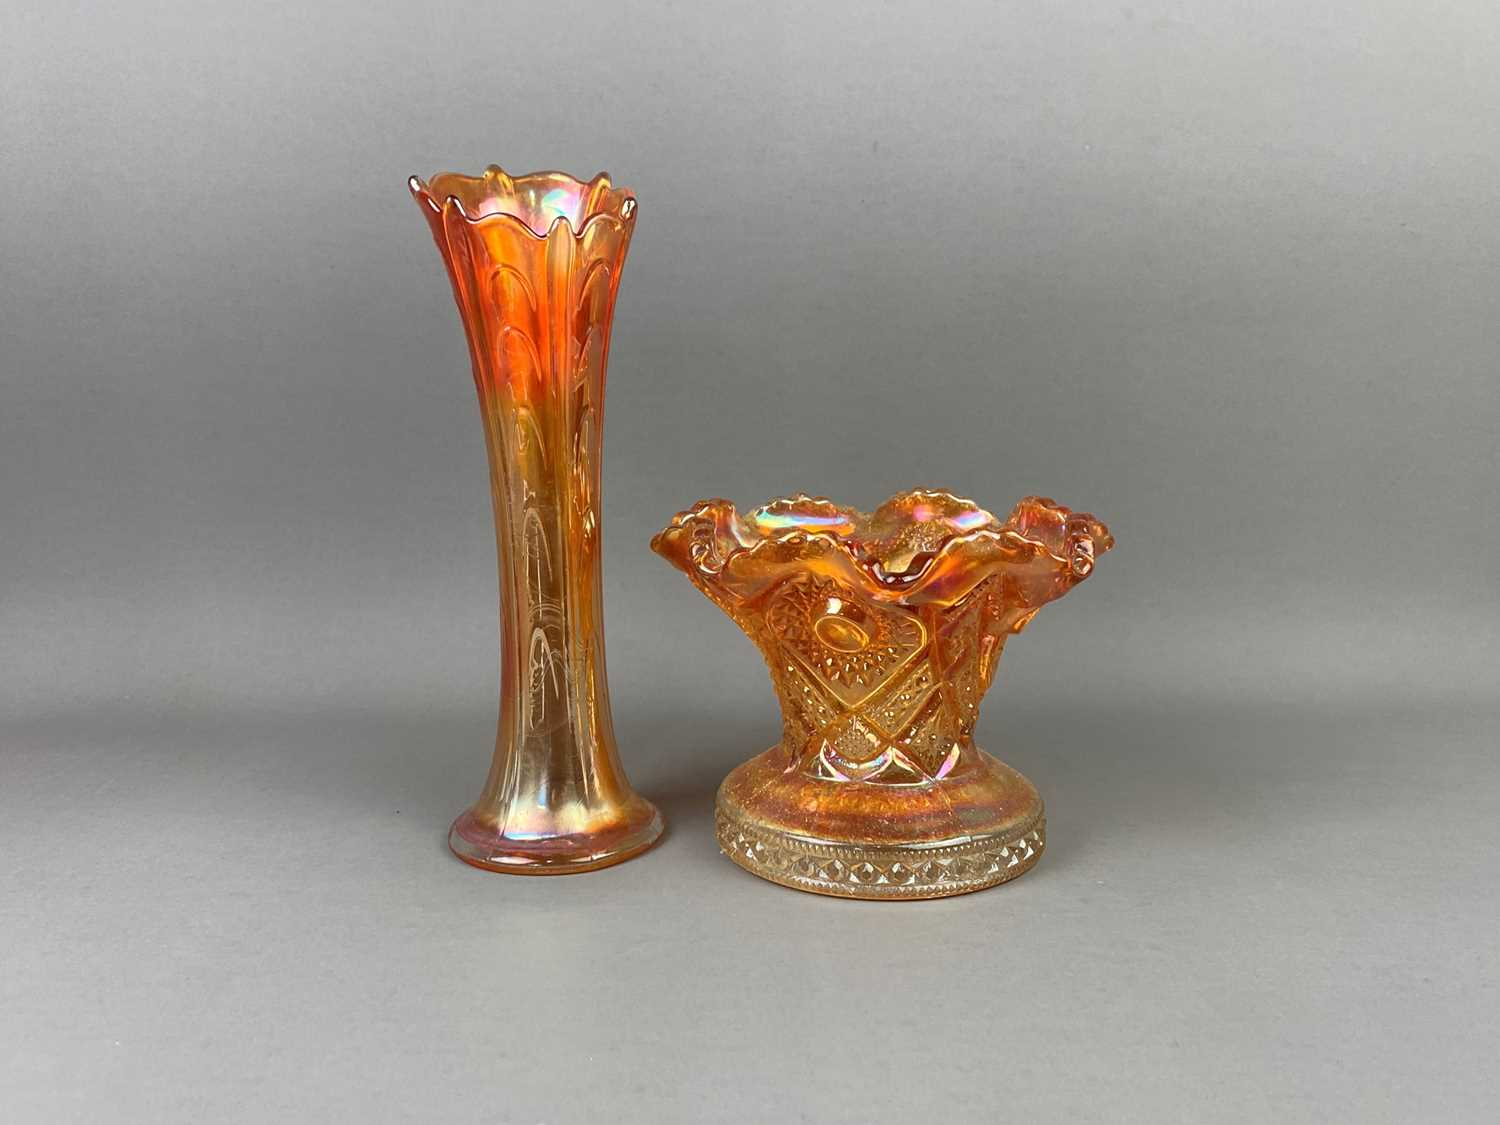 Lot A PAIR OF CARNIVAL GLASS VASES AND OTHER CARNIVAL GLASS